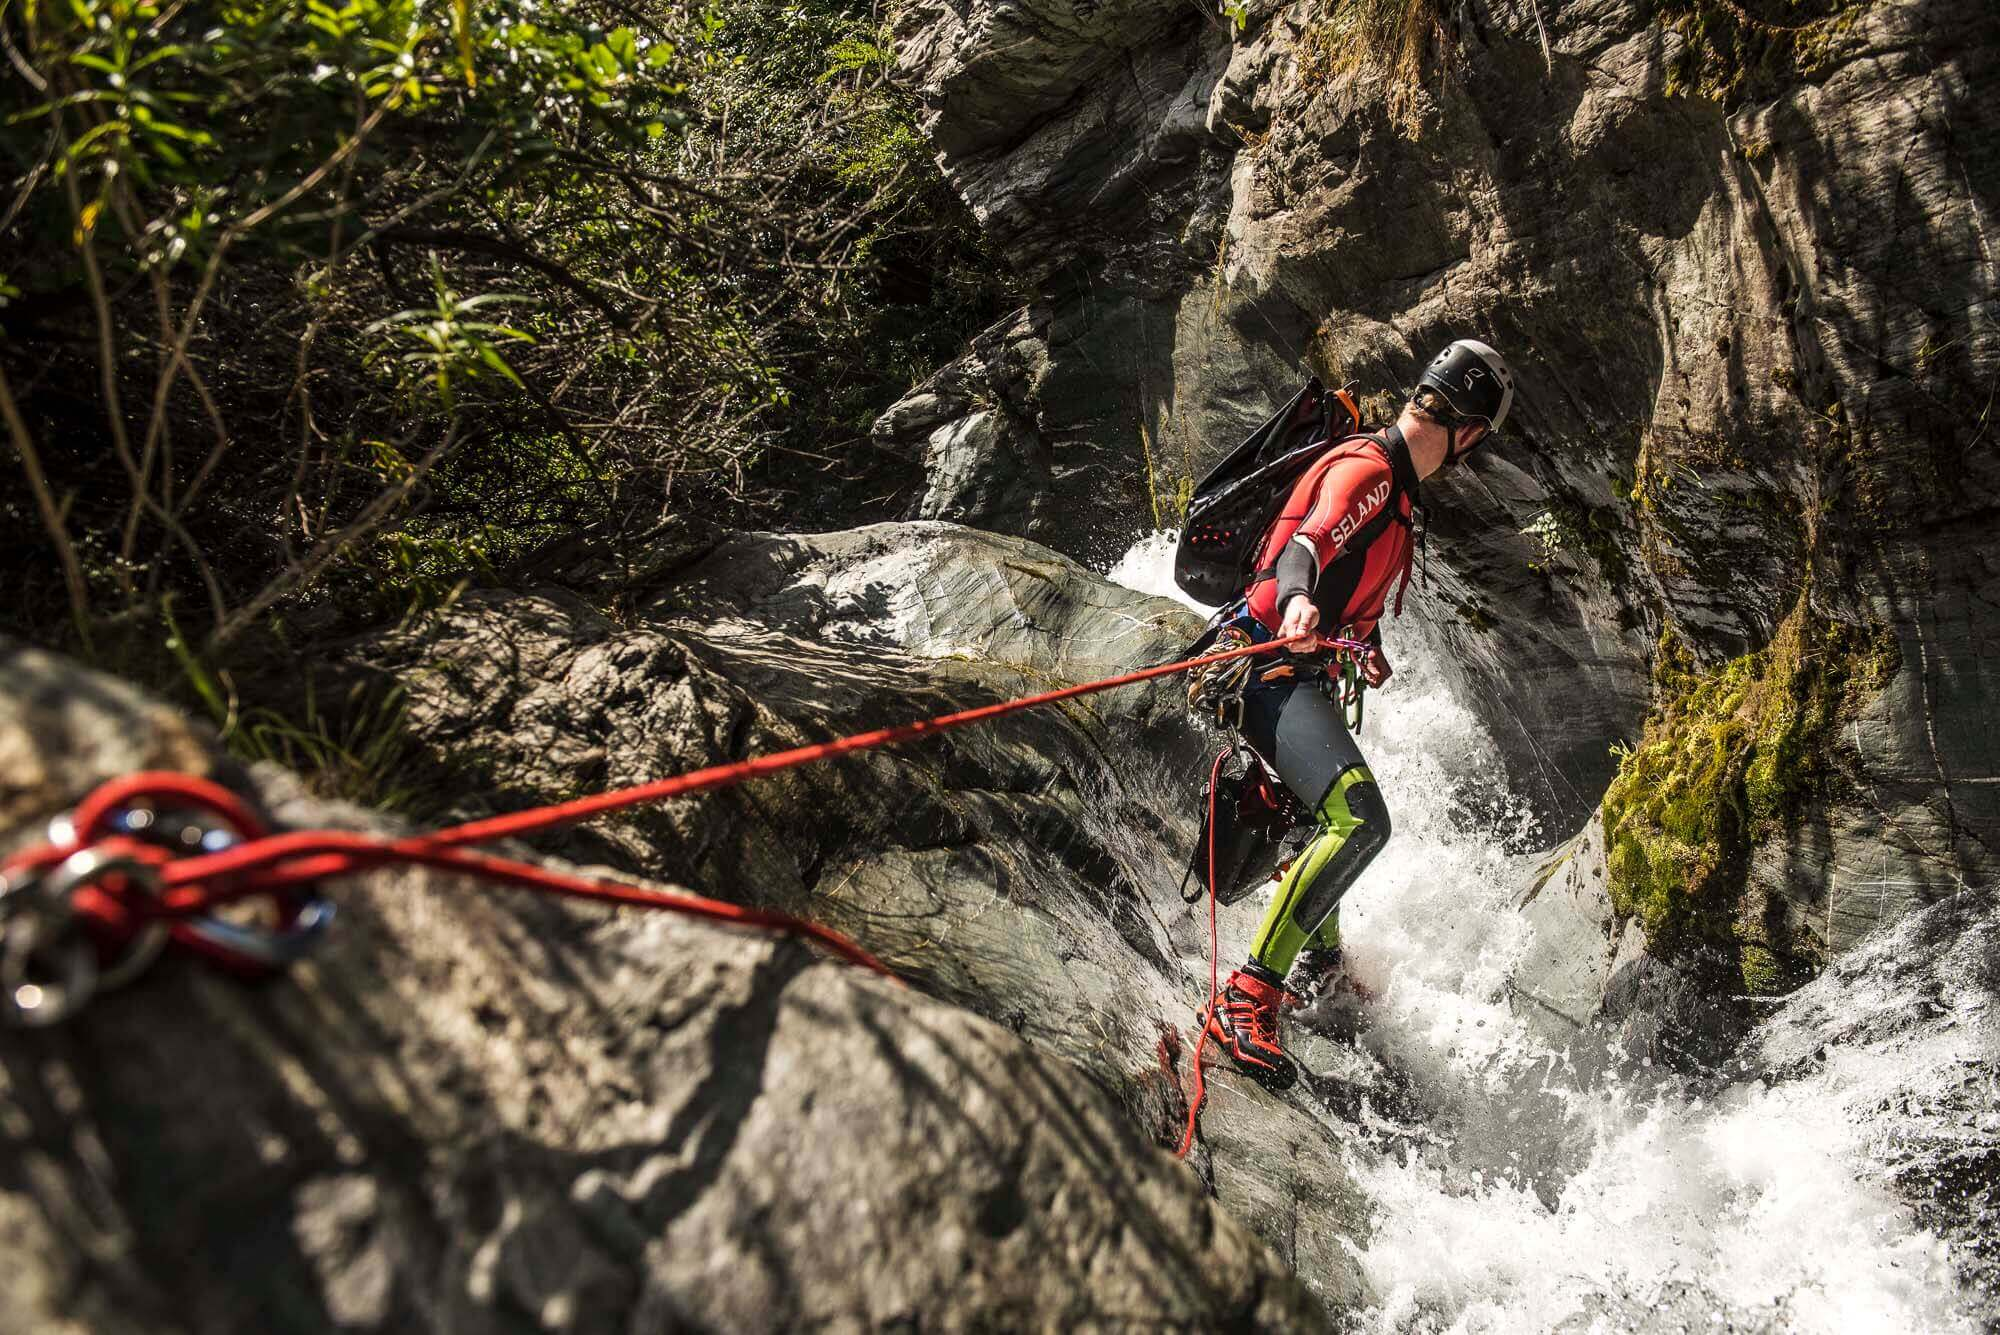 Online Canyoning Courses with V7 Academy are the best way to learn canyoning. Canyoning certifications with V7 Academy. Picture shows a canyoneer rappeling while using a red rope and a red top. Image by Gus Schiavon (@v7gus)